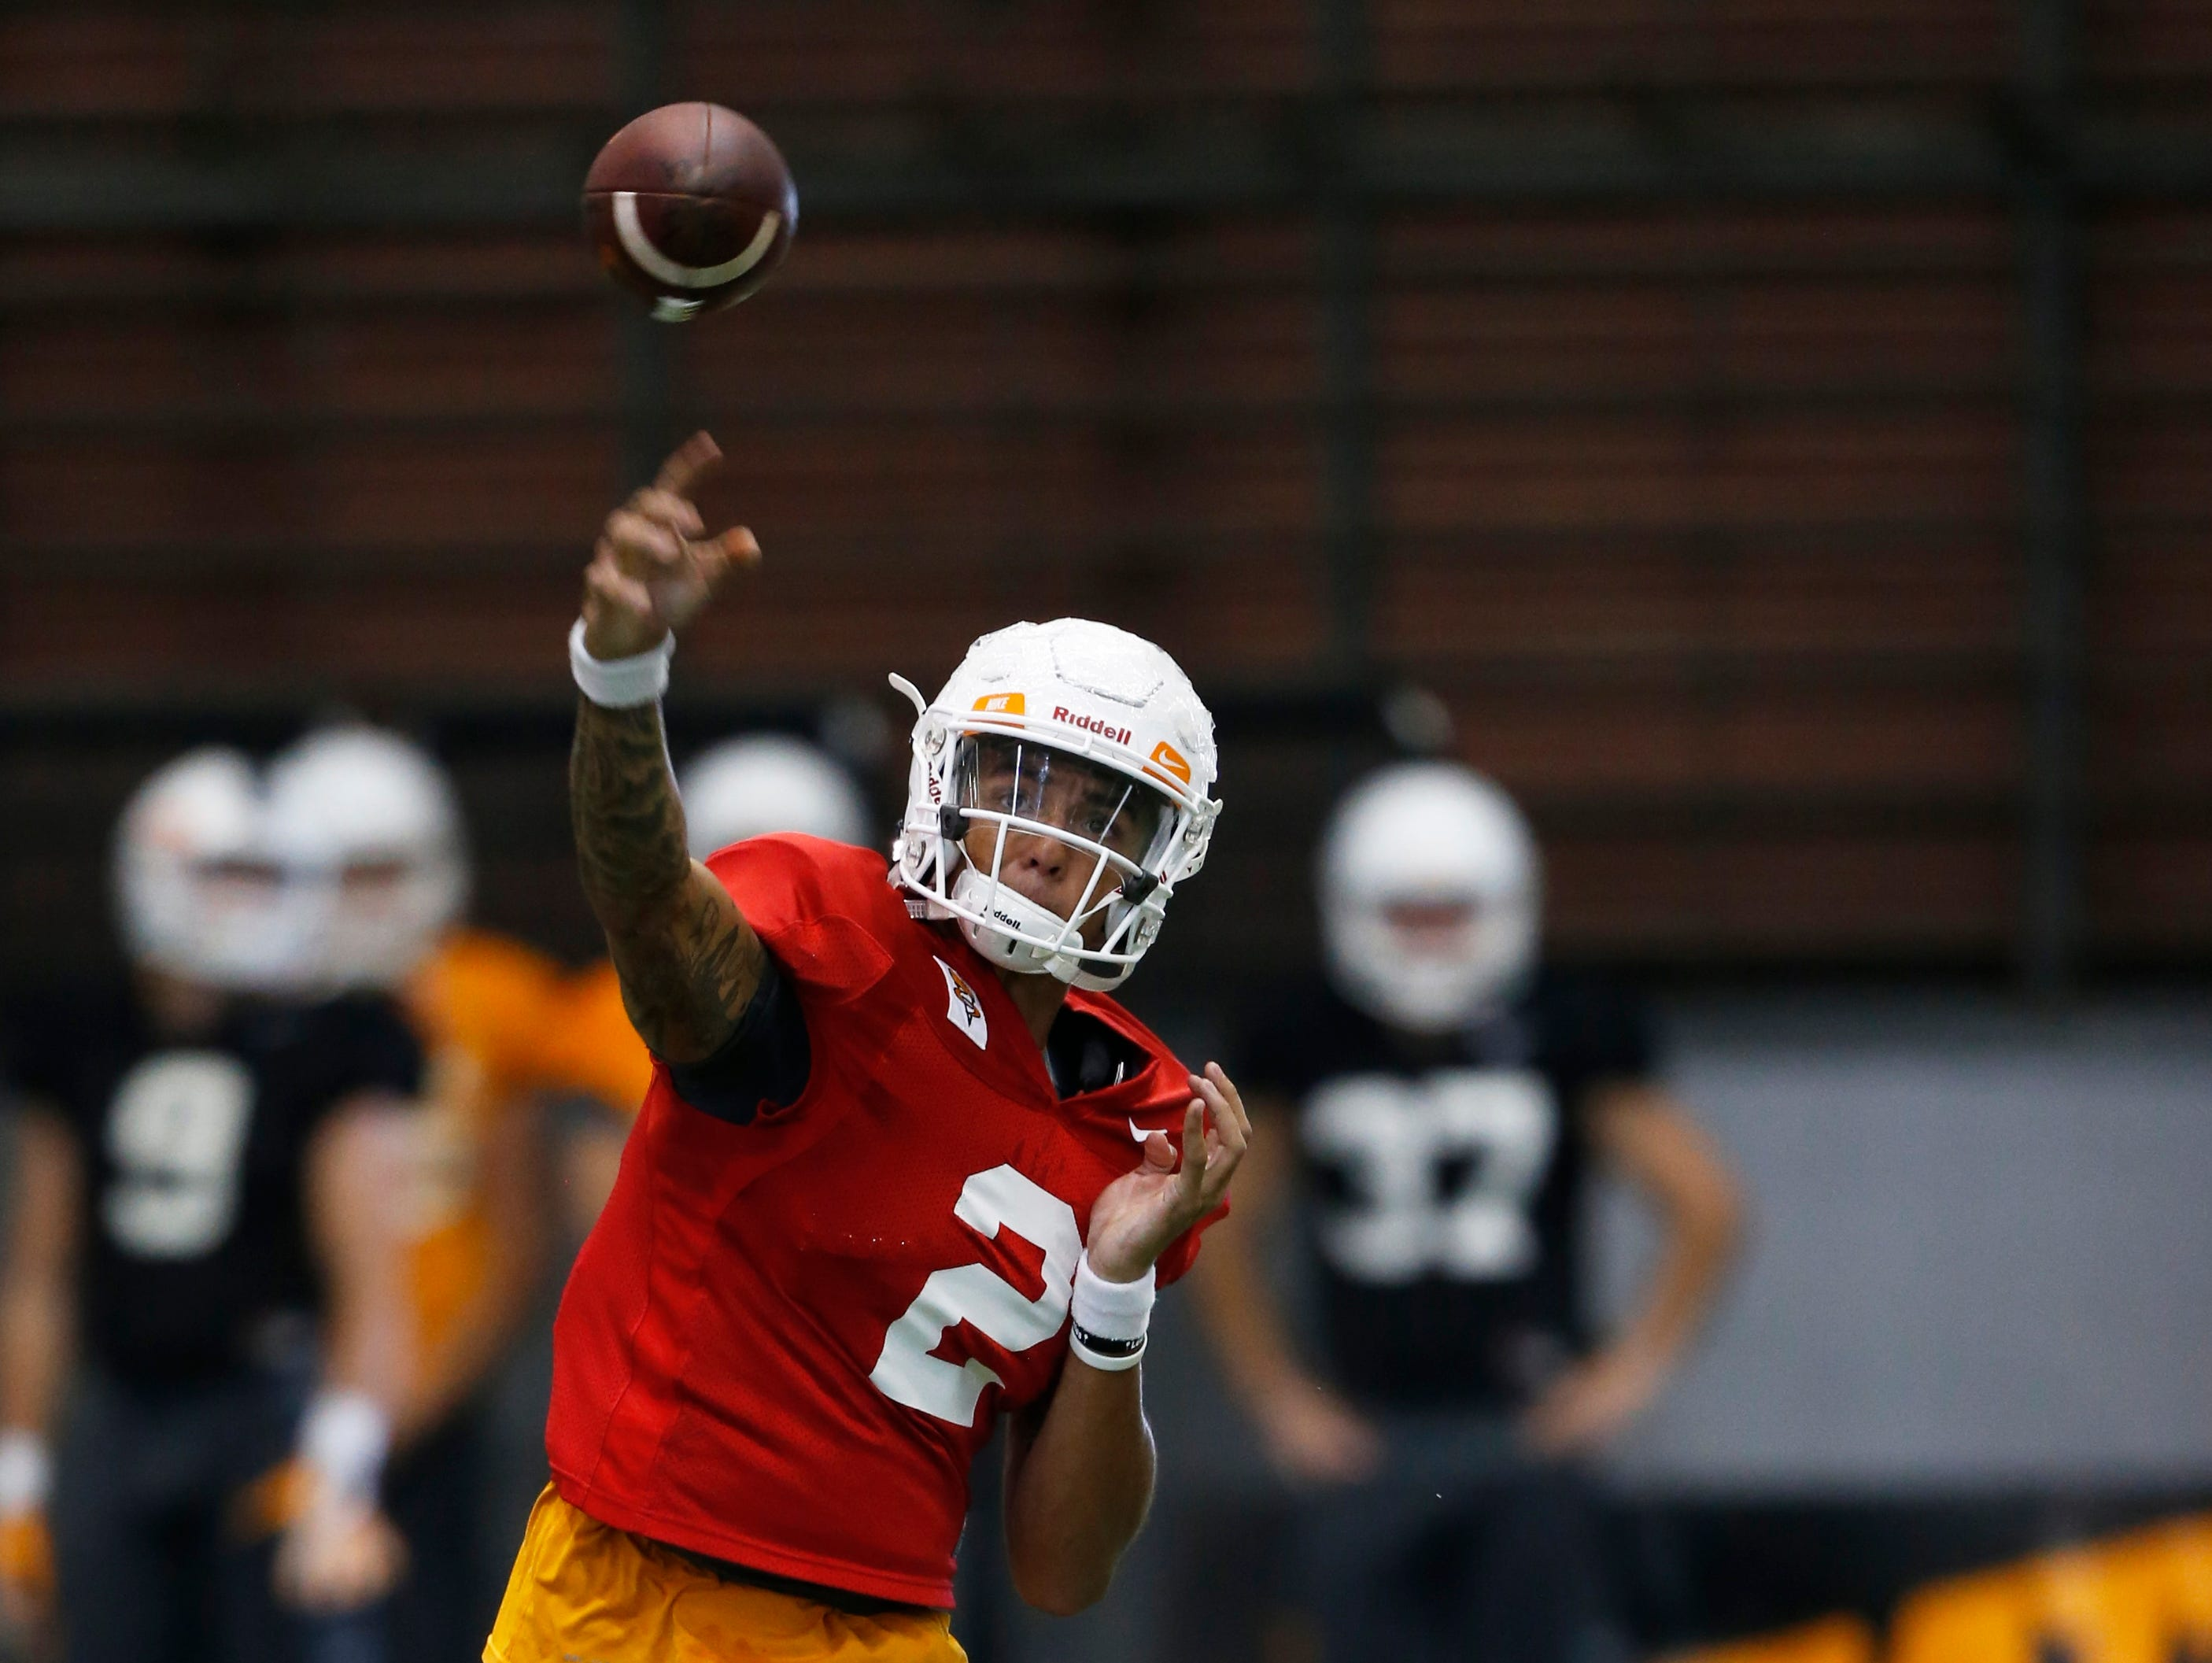 Quarterback Jarrett Guarantano throws to a receiver during practice Thursday, Aug. 31, 2017, in Knoxville, Tenn.